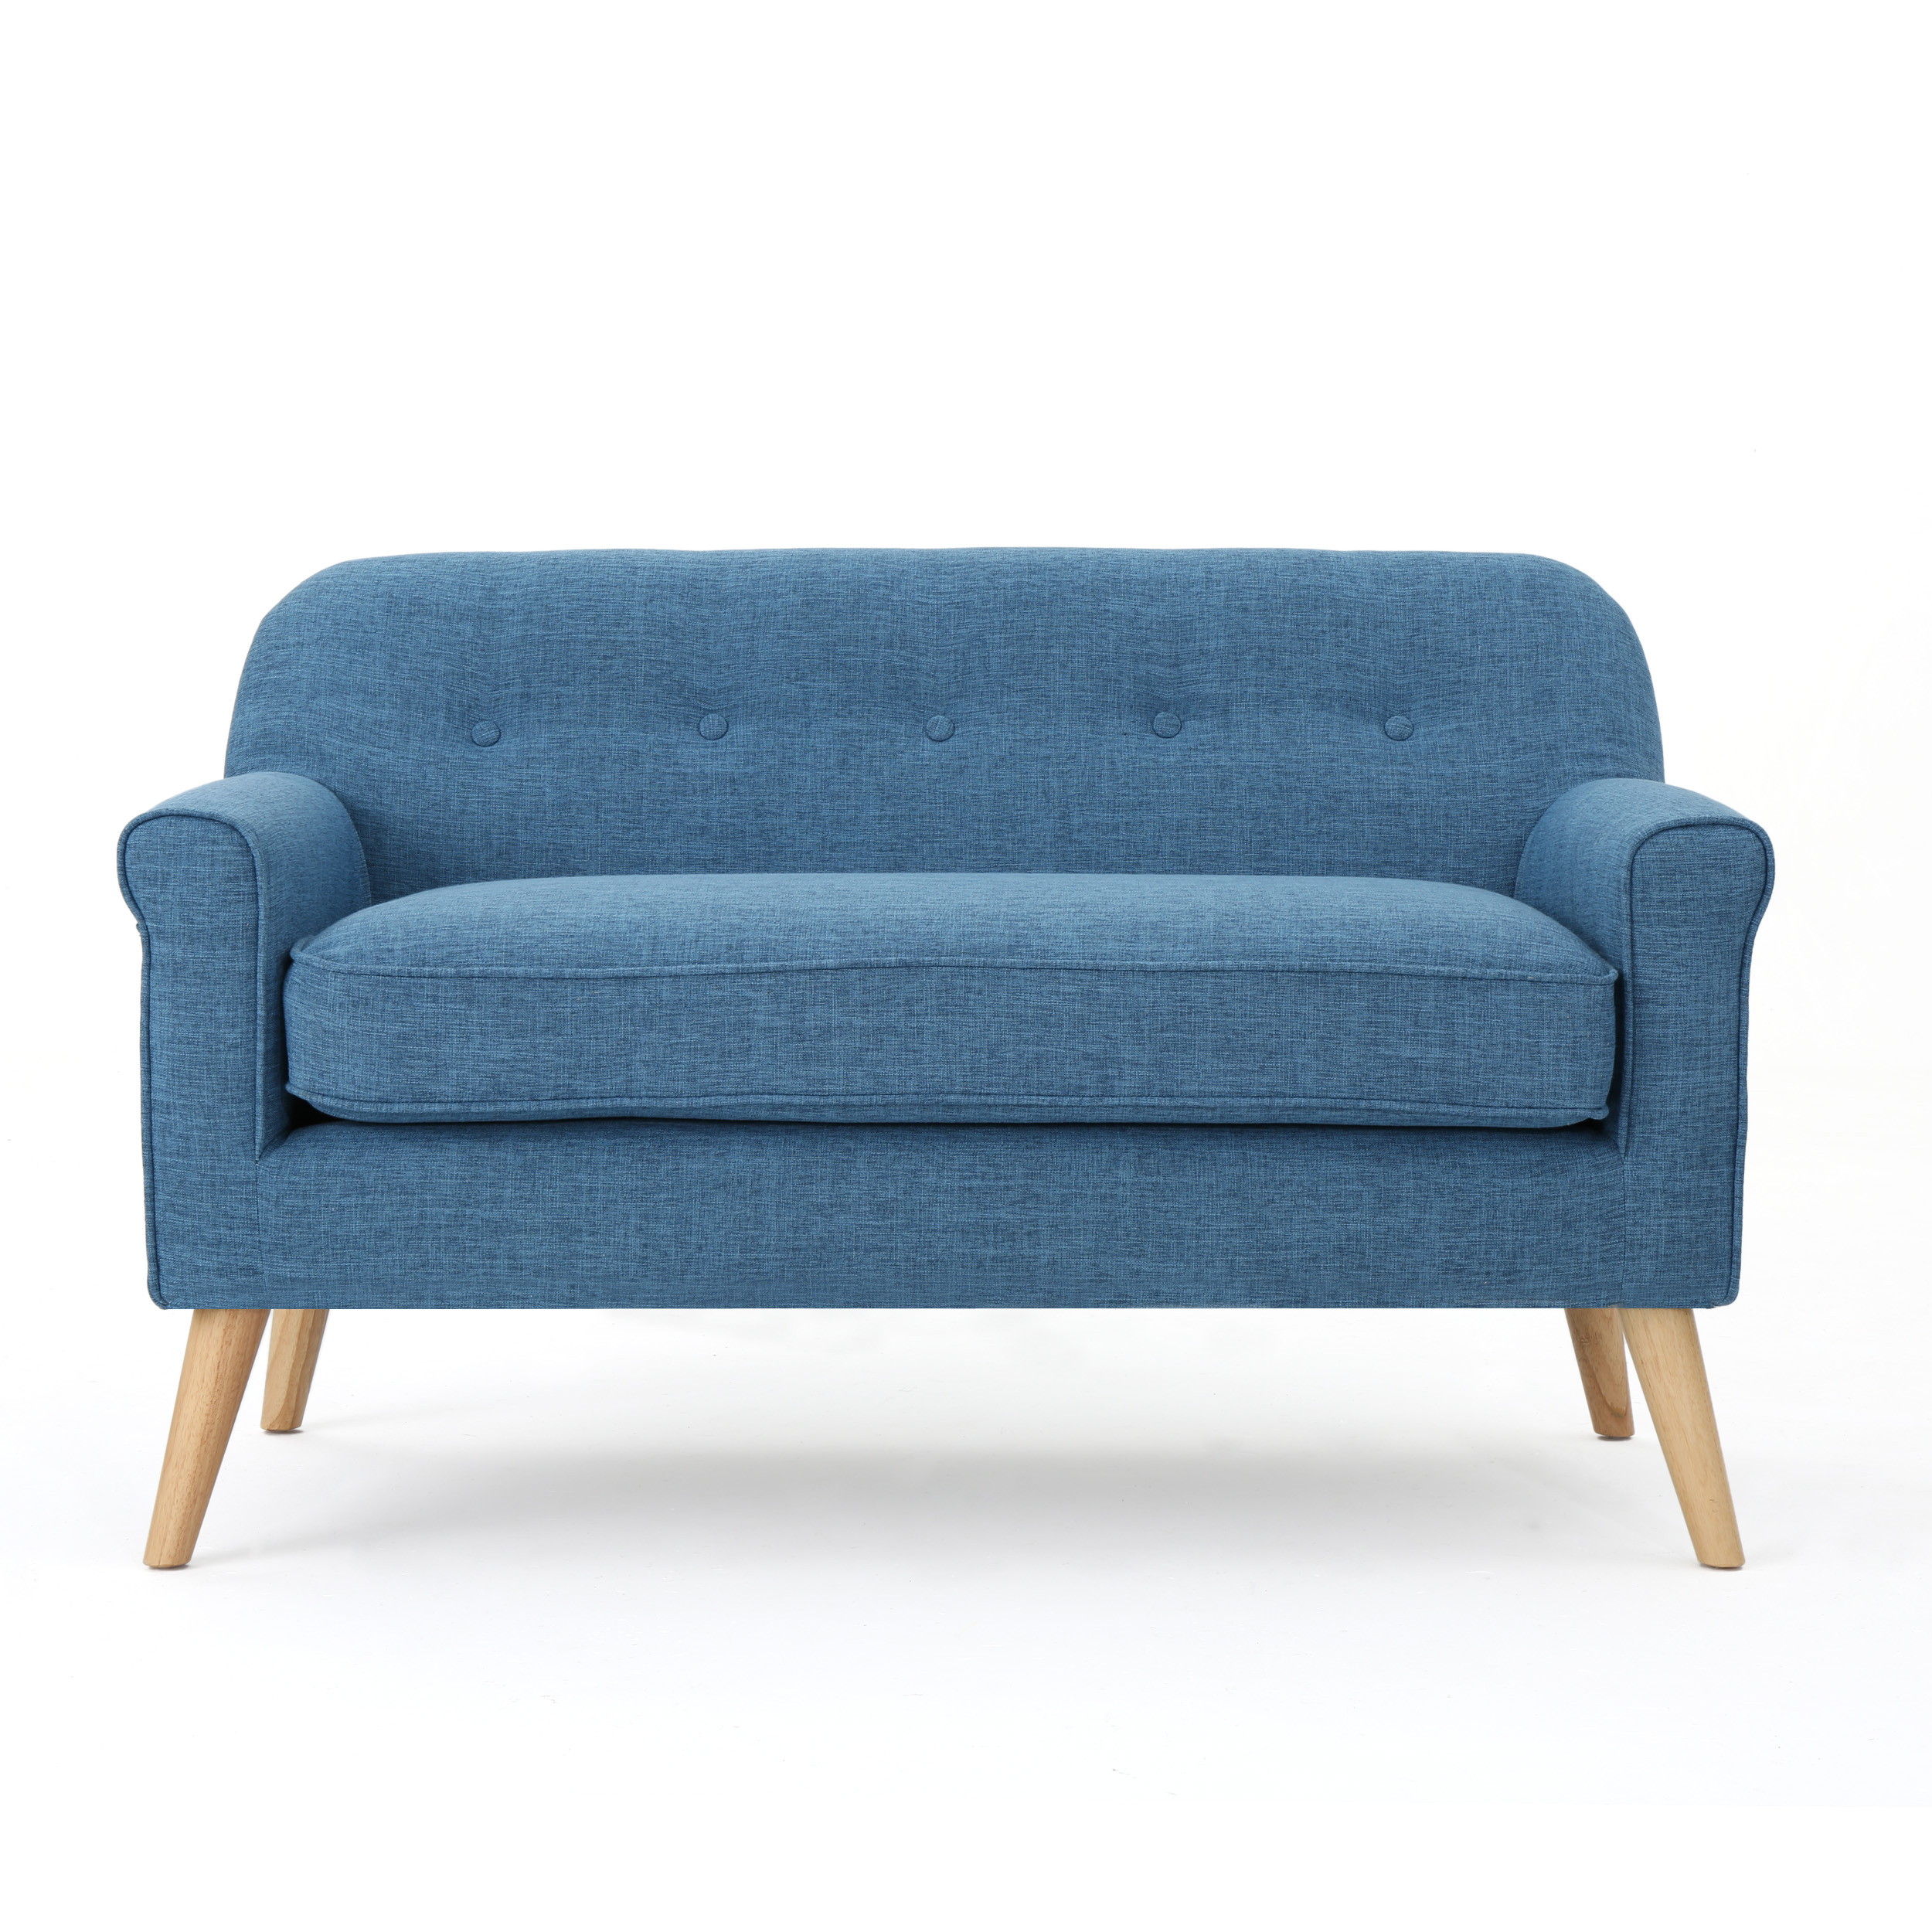 Mia Mid Century Modern Loveseat, Muted Blue